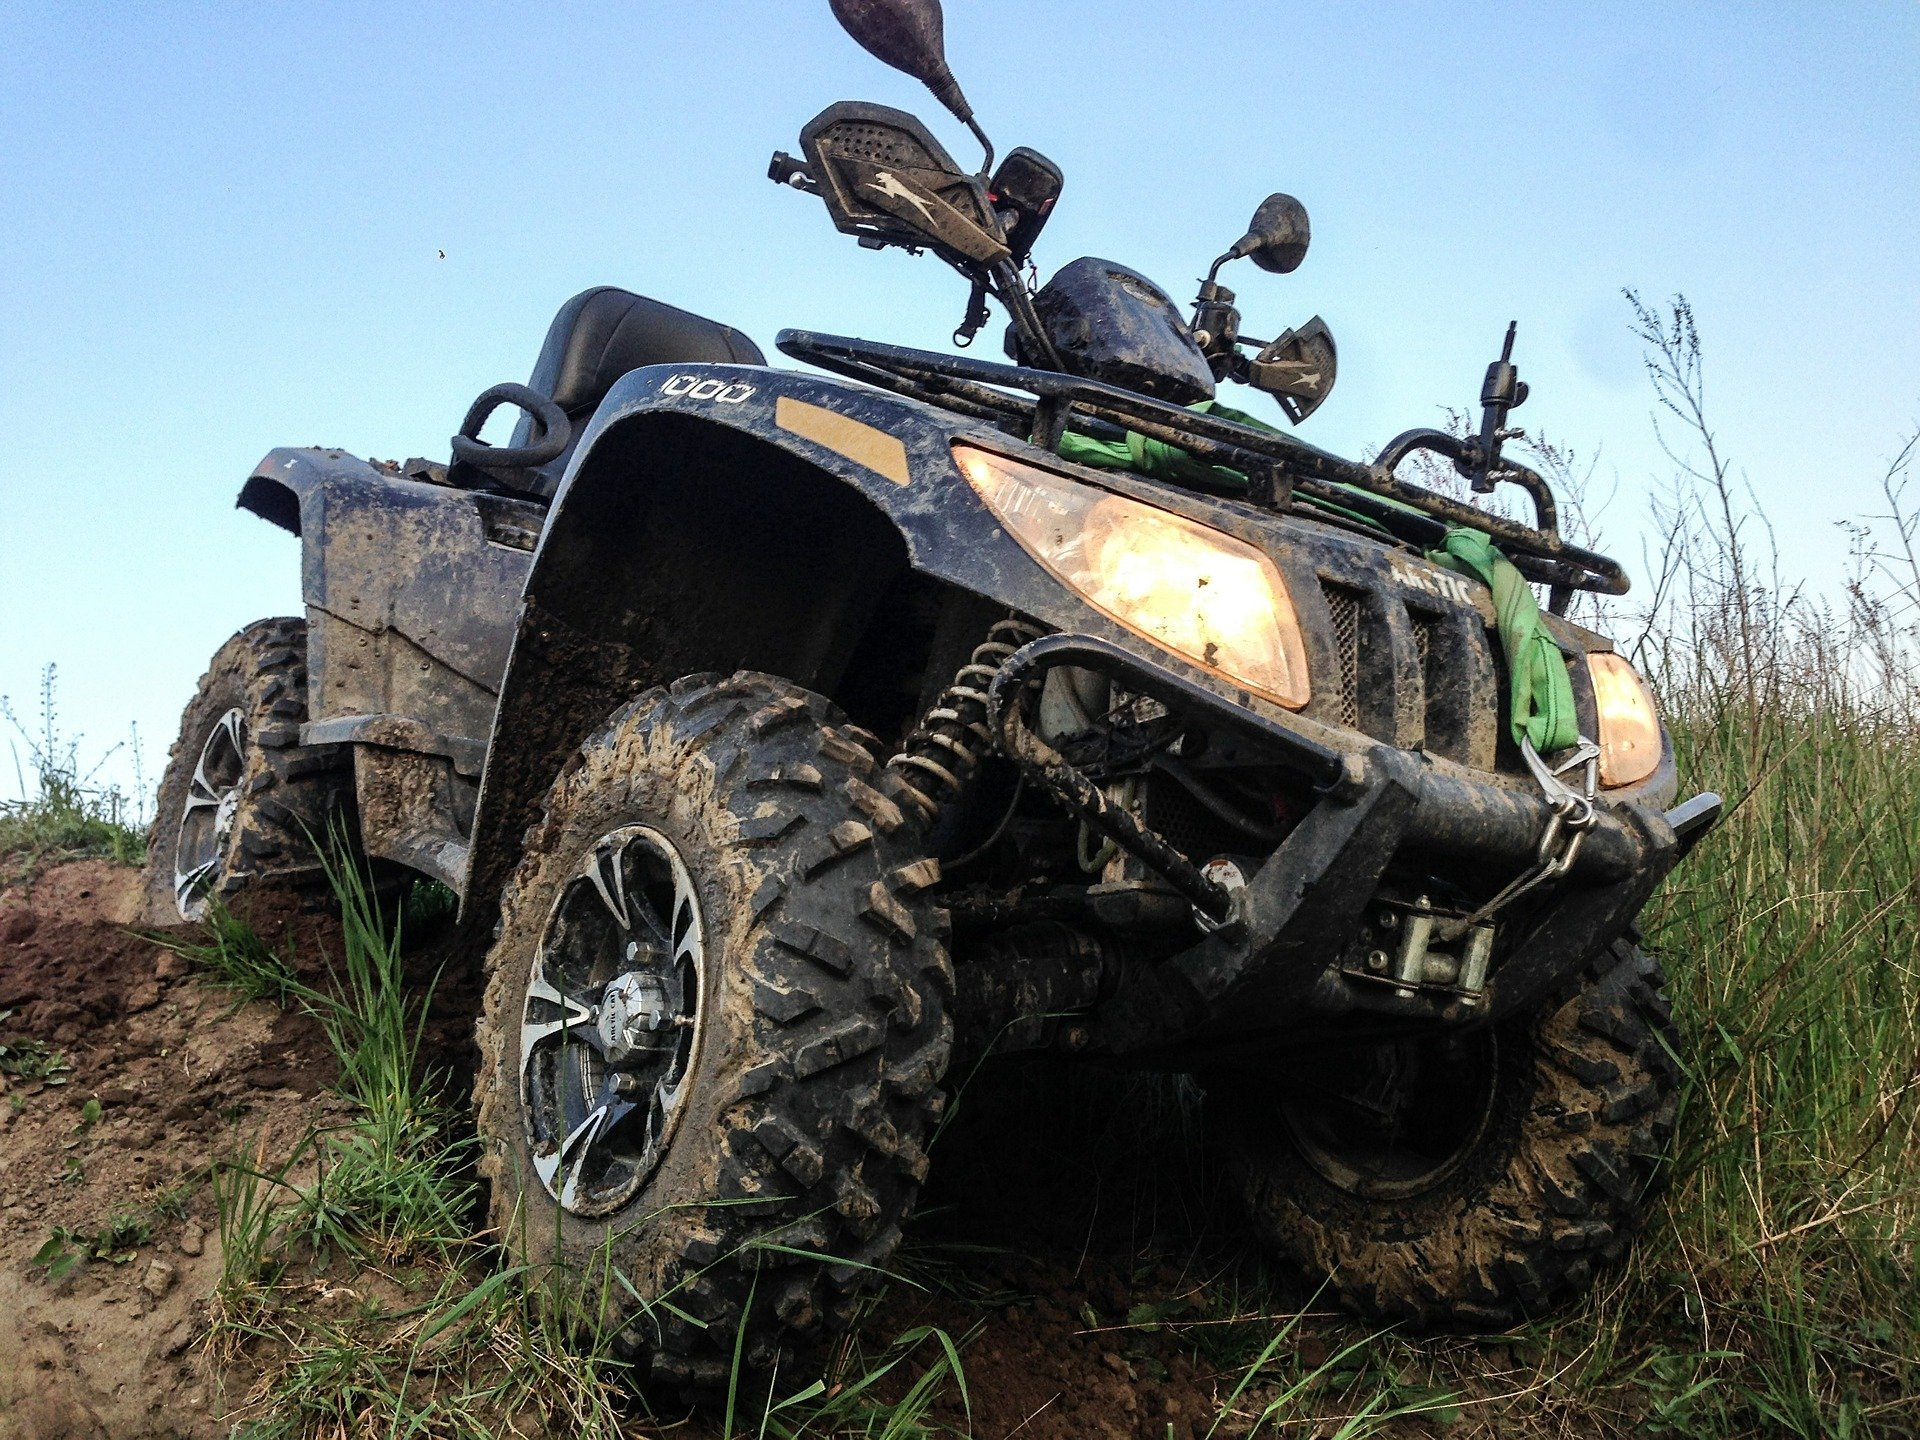 ATV & Recreational Vehicle Insurance